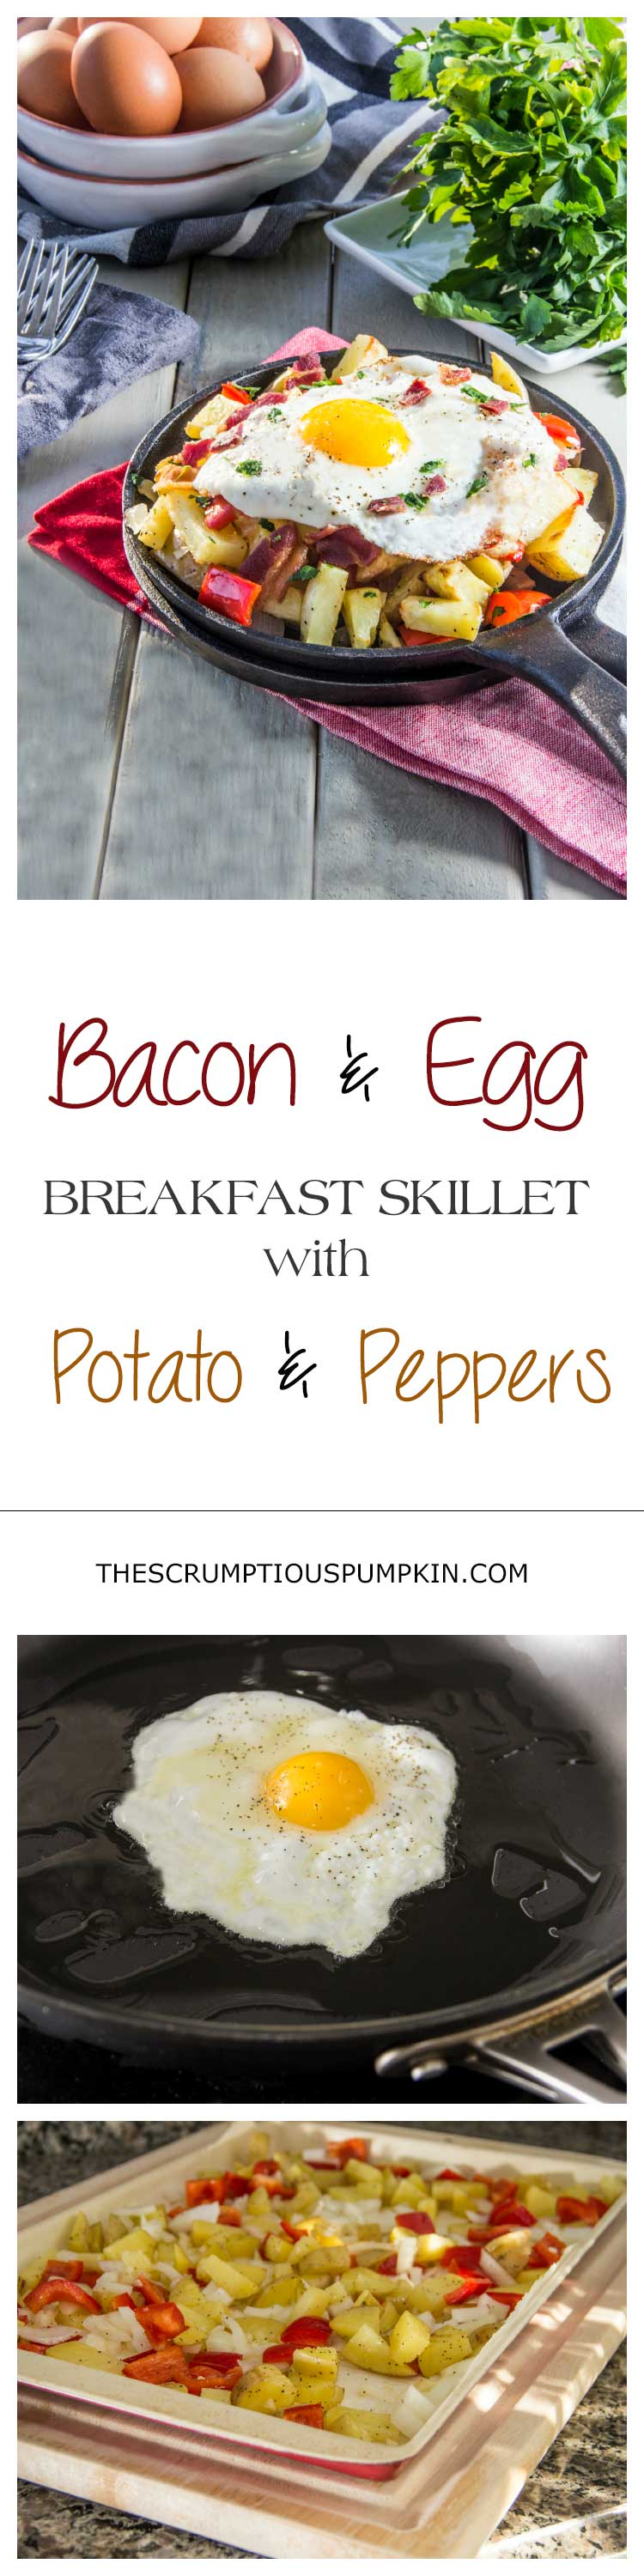 Bacon-and-Egg-Breakfast-Skillet-with-Potato-and-Peppers